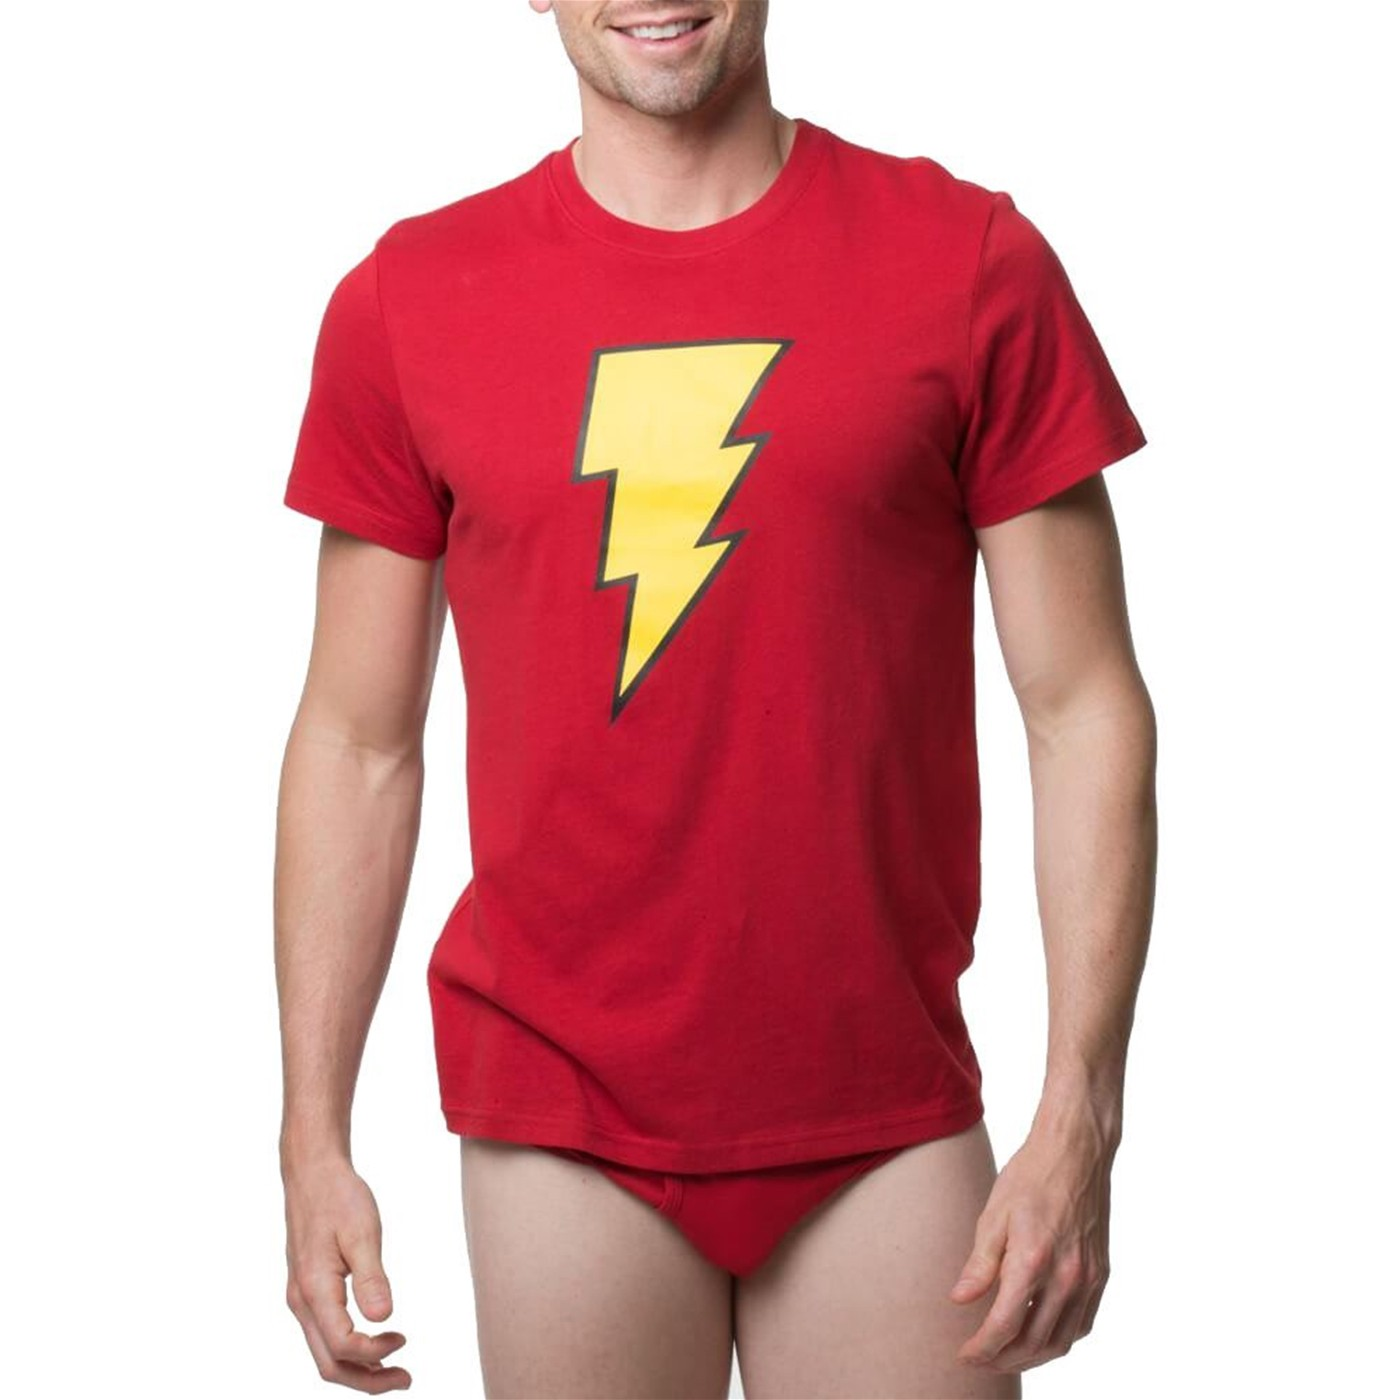 Shazam! Men's Underwear Briefs and Shirt Set